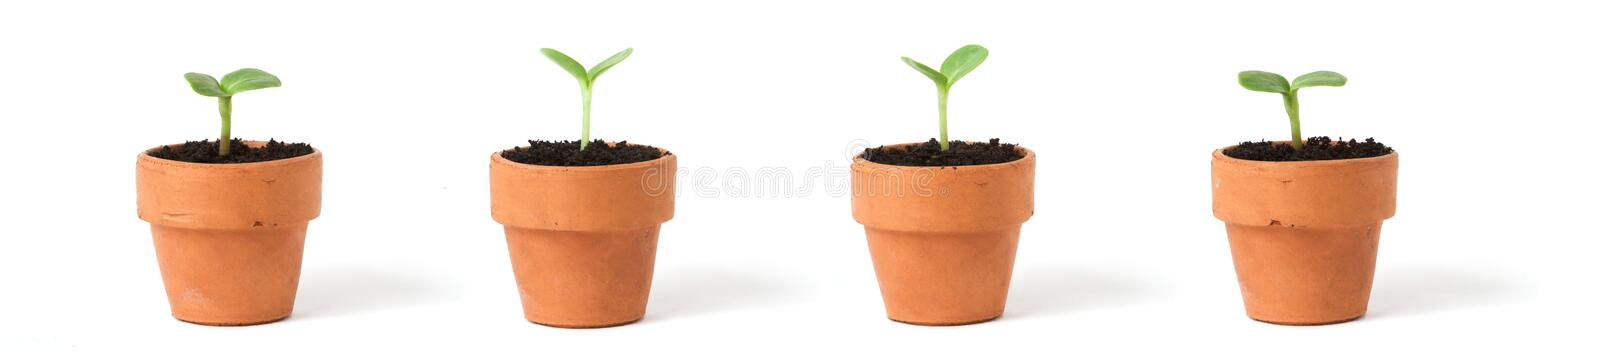 Pots on White royalty free stock image